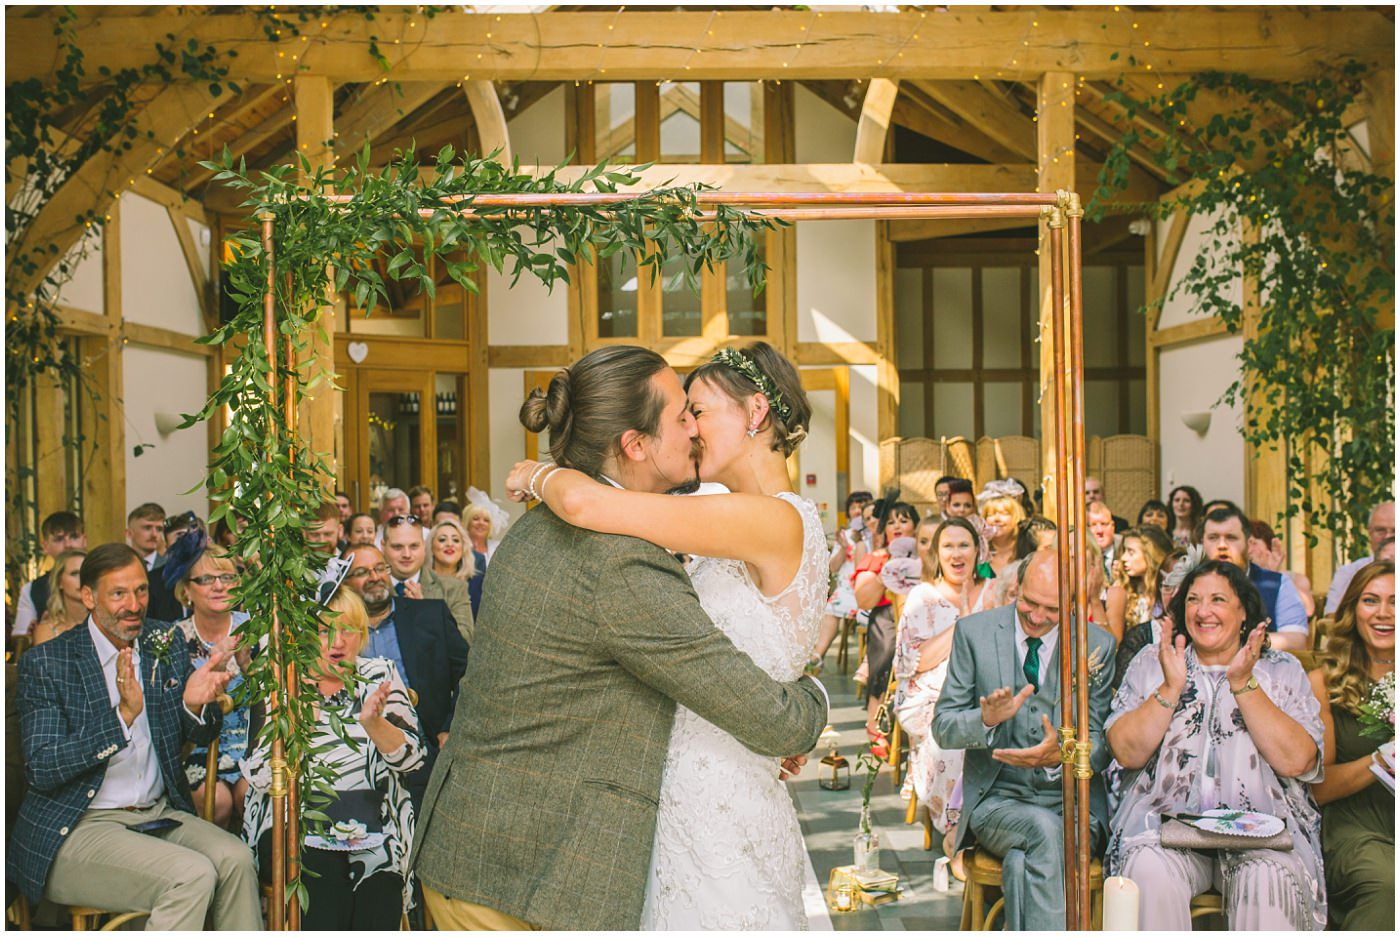 Bride and Groom kiss in wedding ceremony in knutsford